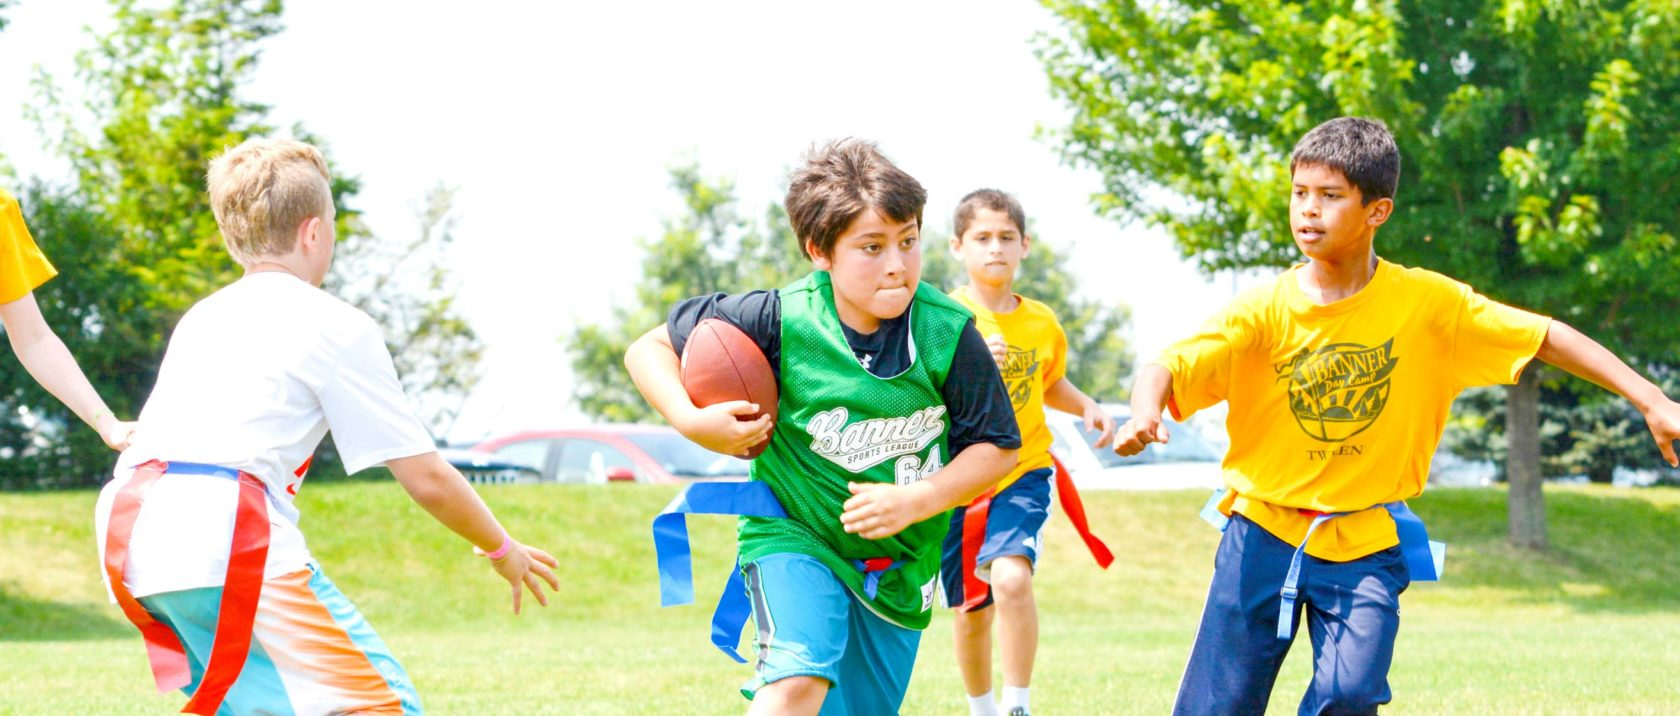 Campers playing flag football